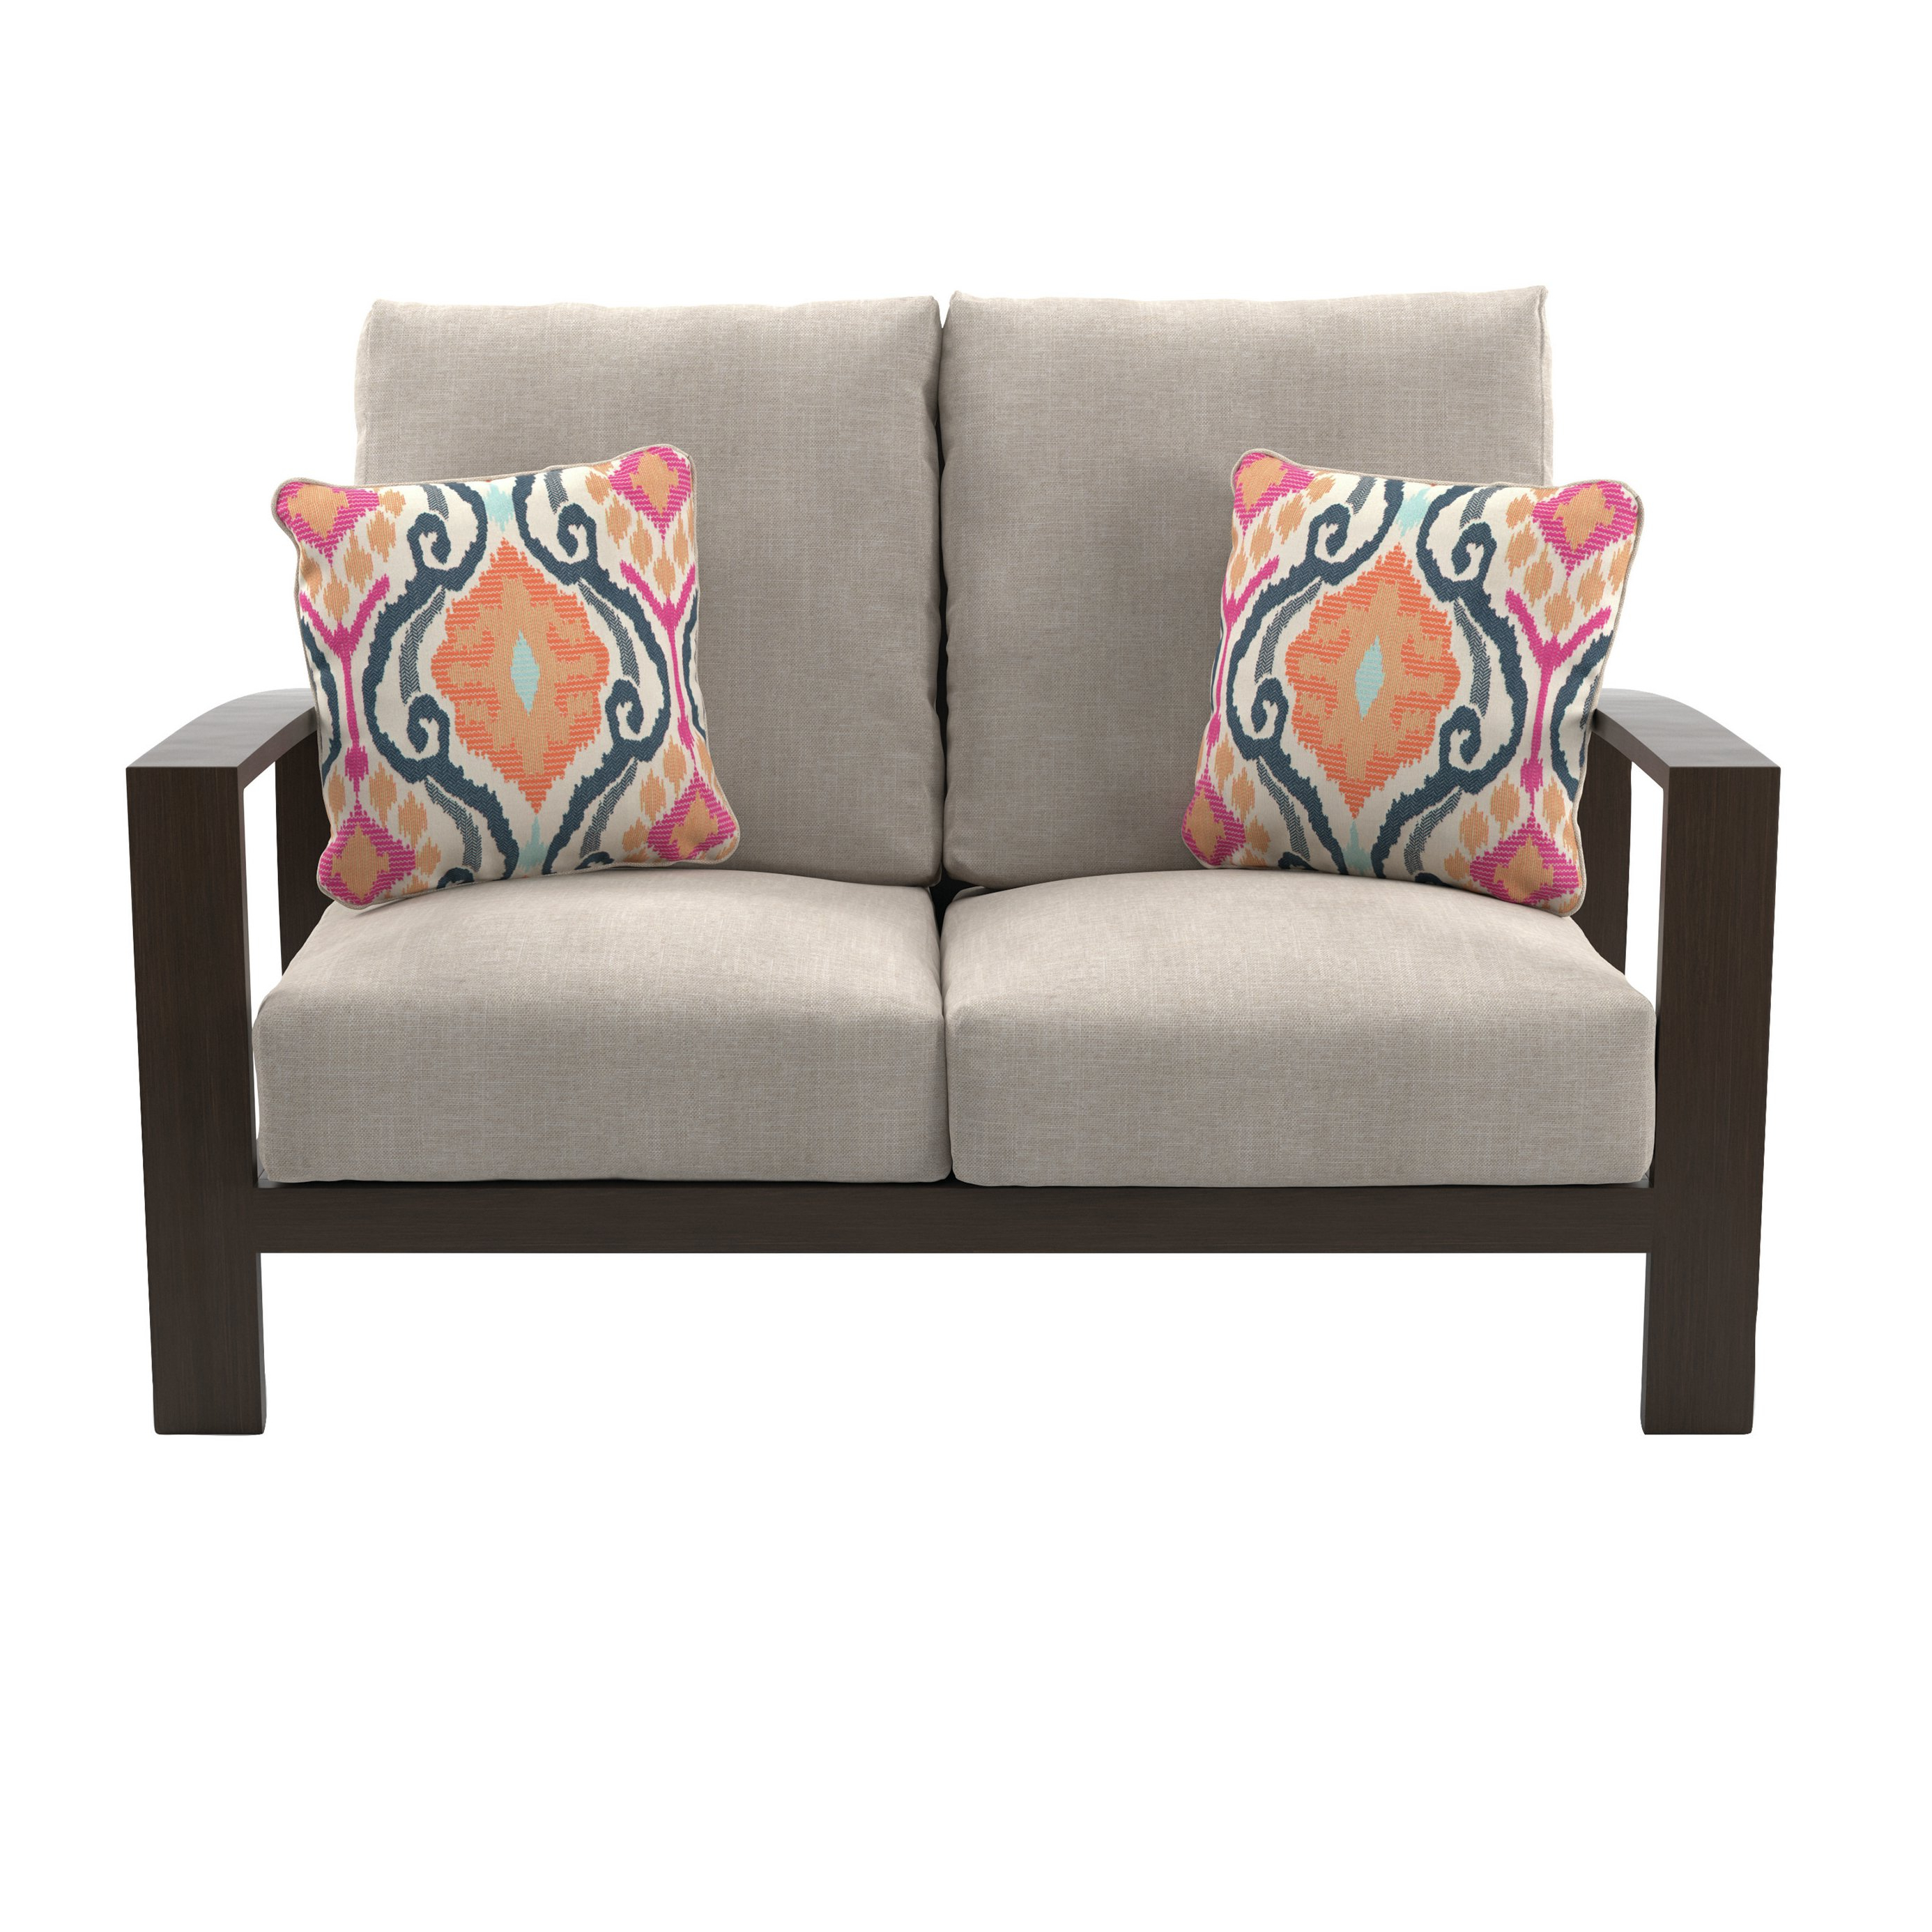 2019 Jay Loveseat With Cushions Throughout Baltic Loveseats With Cushions (View 12 of 25)